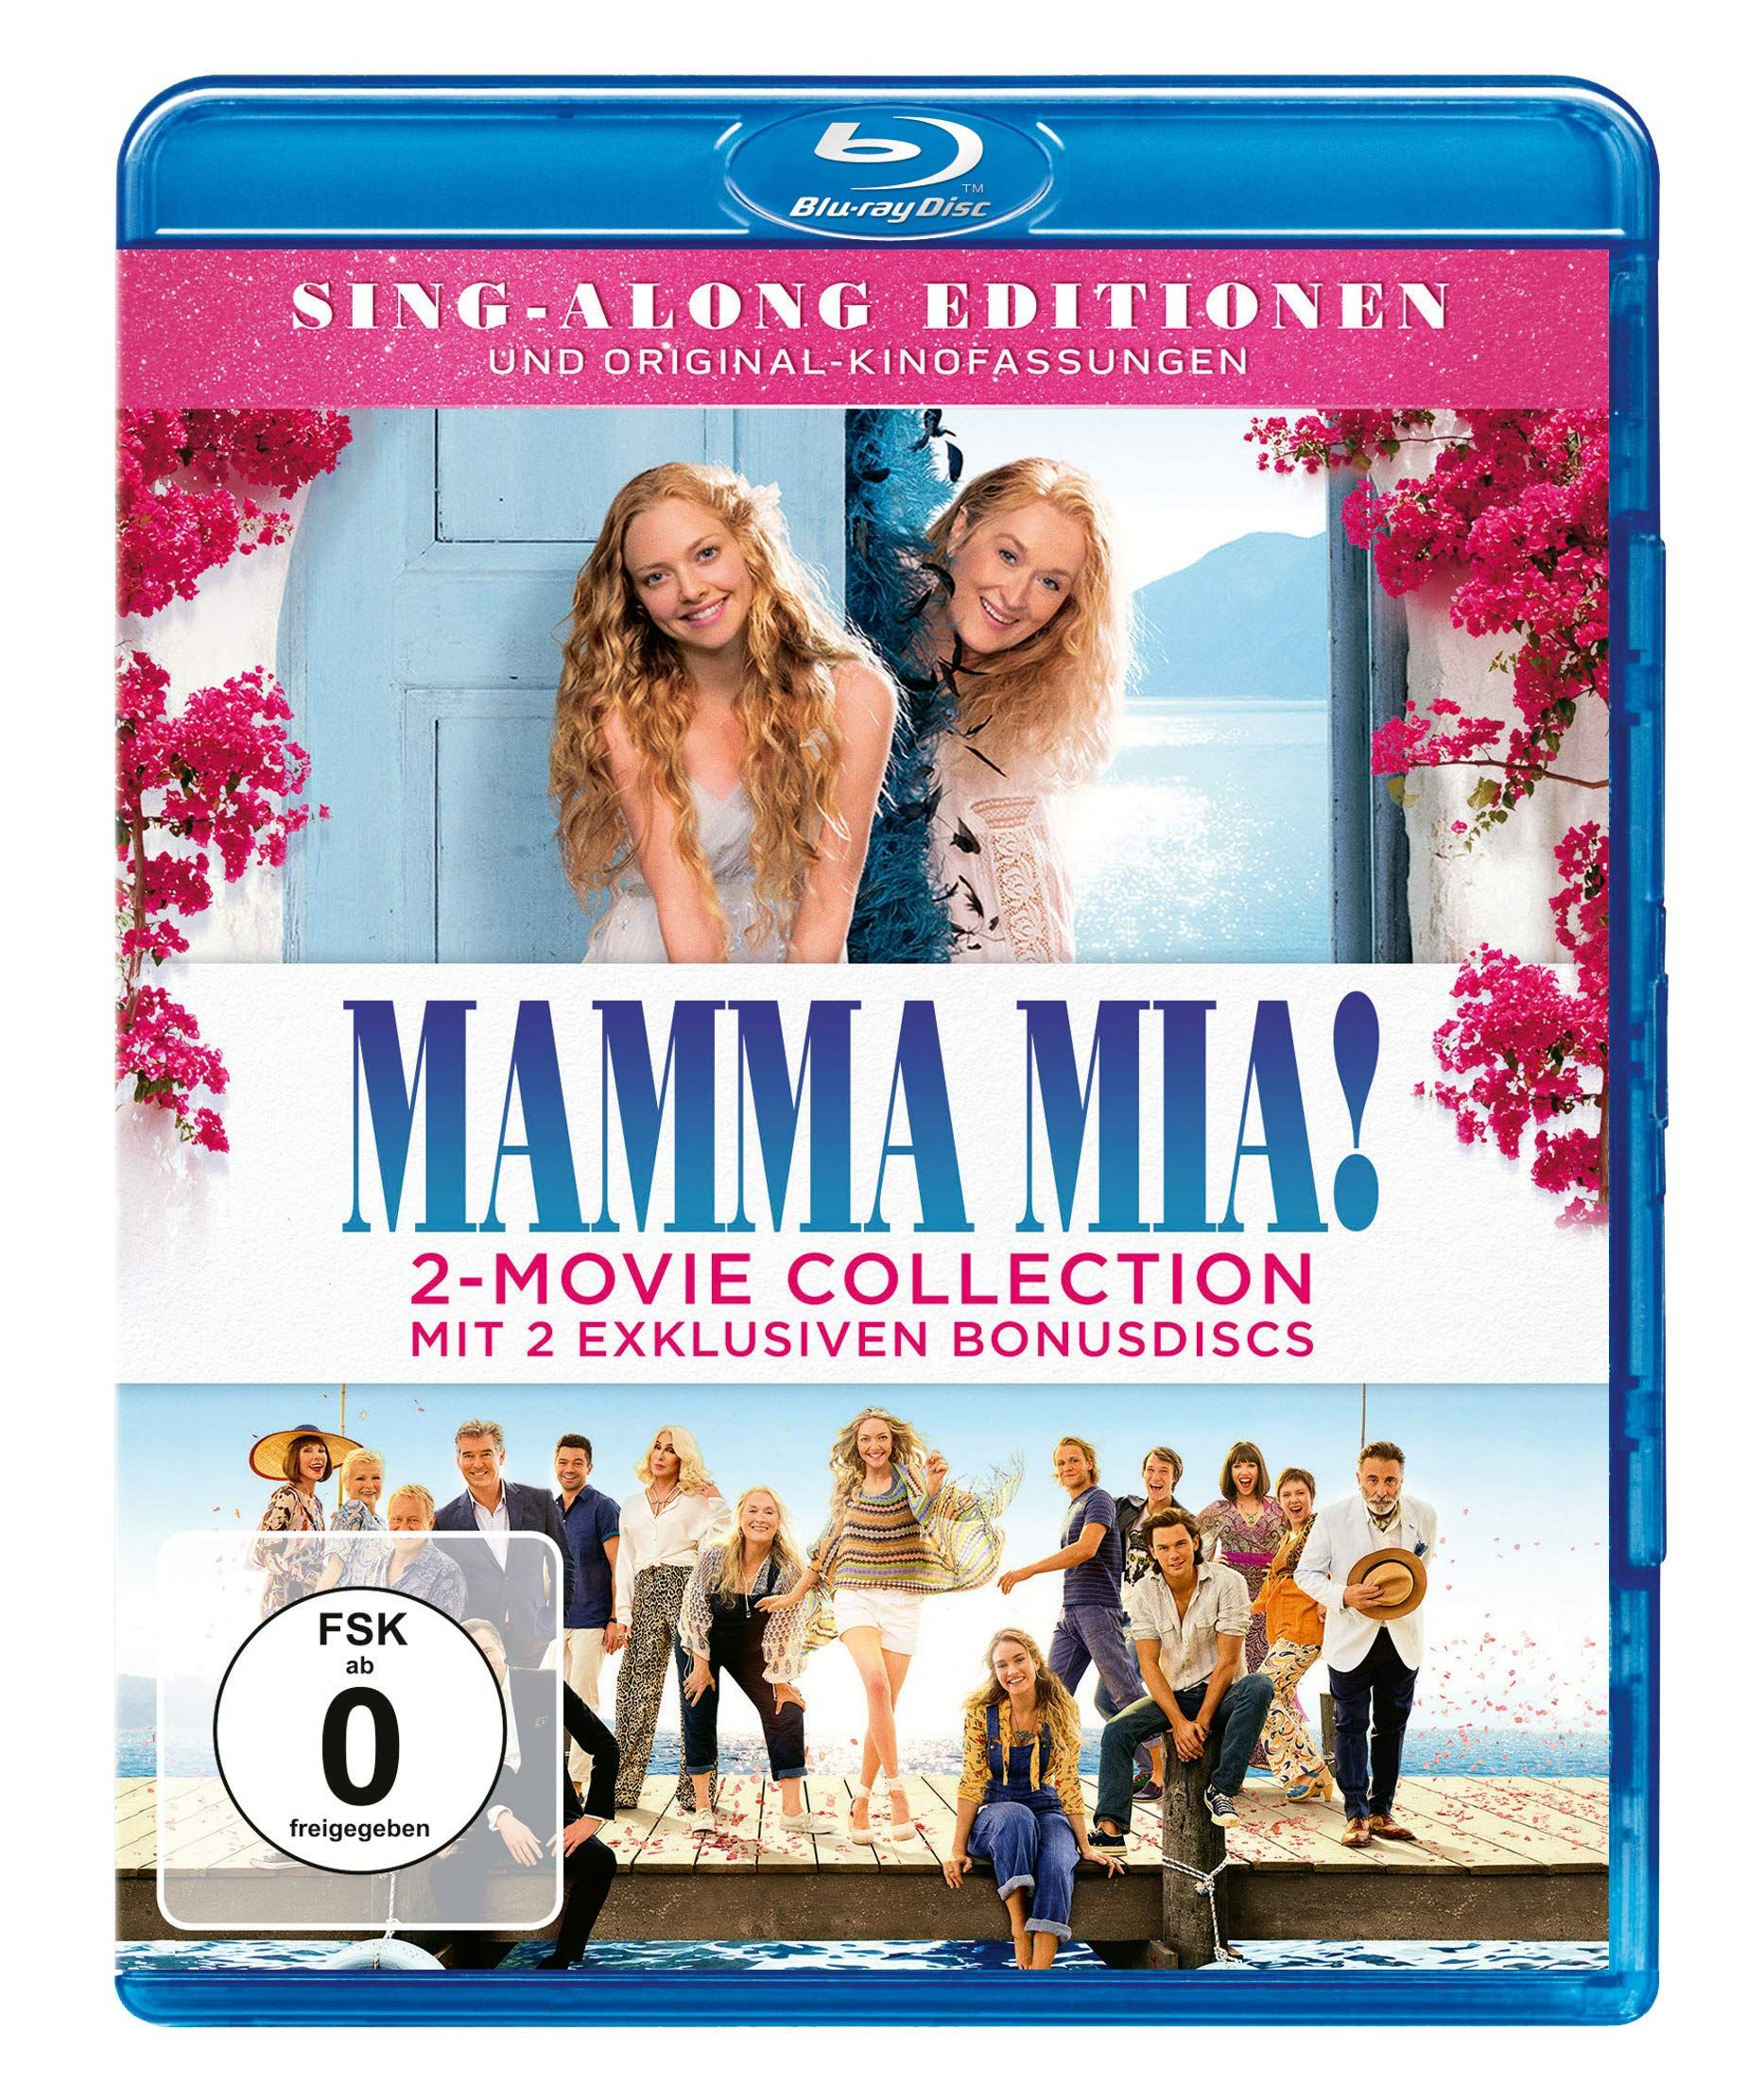 Mamma Mia Mamma Mia Here We Go Again 2 Bonus Discs Mia Mamma Discs Bonus Mamma Mia Movie Collection 2 Movie